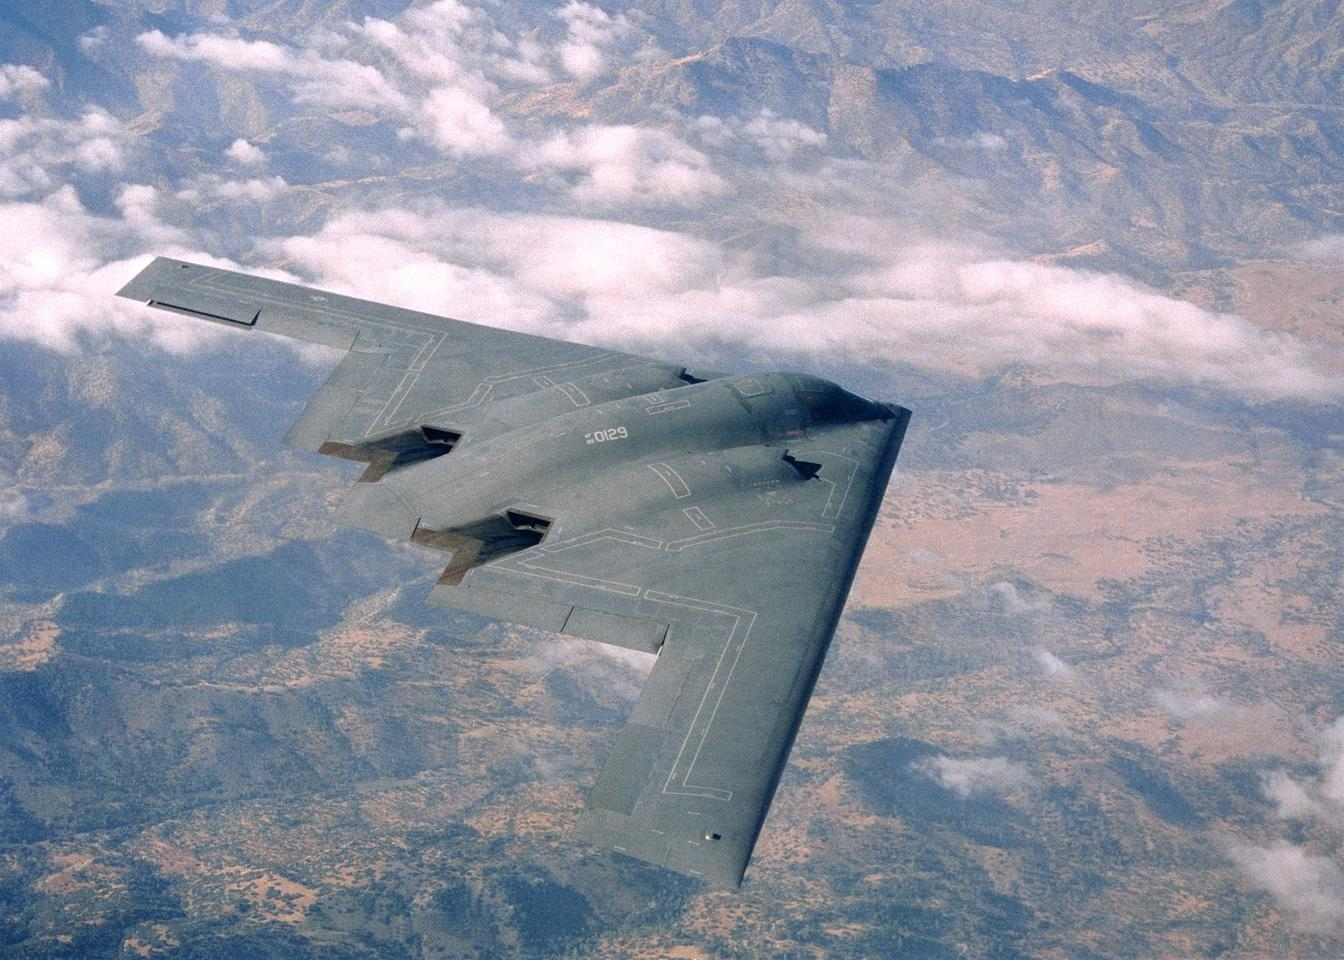 The next generation bomber may be based in part on the B-2 Spirit bomber